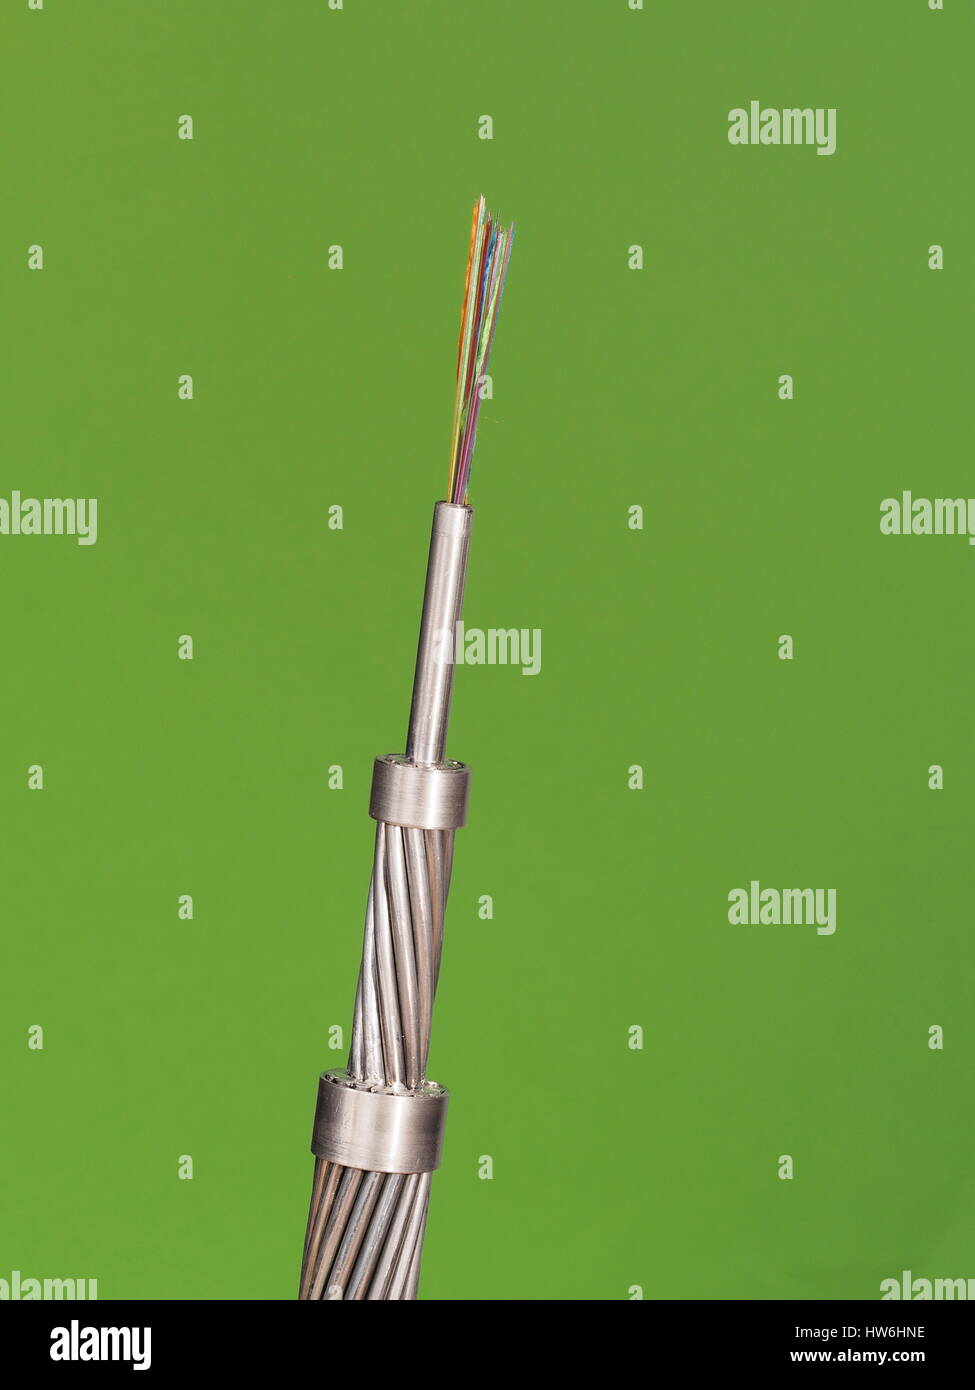 High voltage conventional ACSR design power line conductor on green background, Australia 2015 - Stock Image